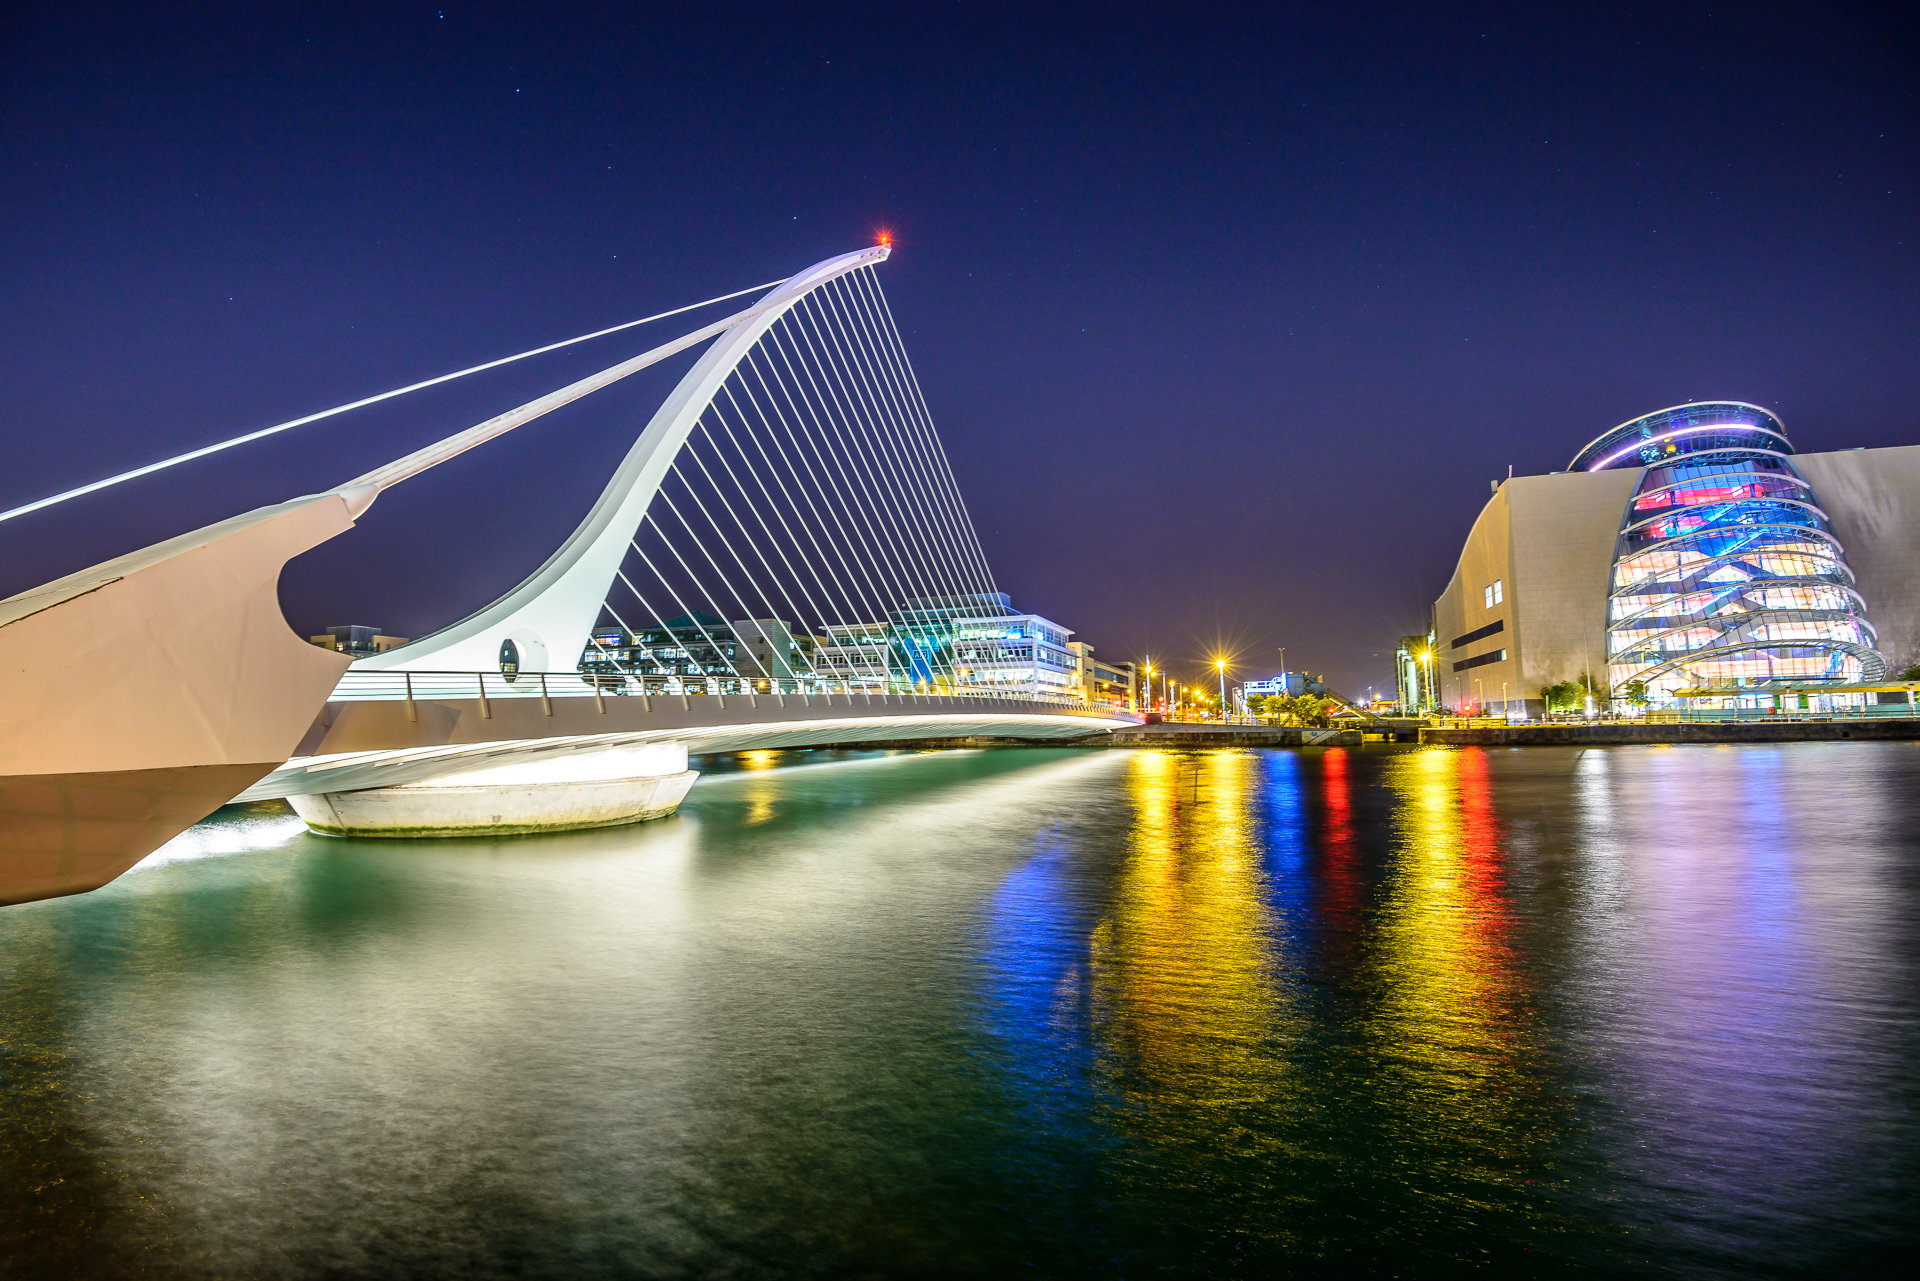 Samuel Beckett bridge / Dublin